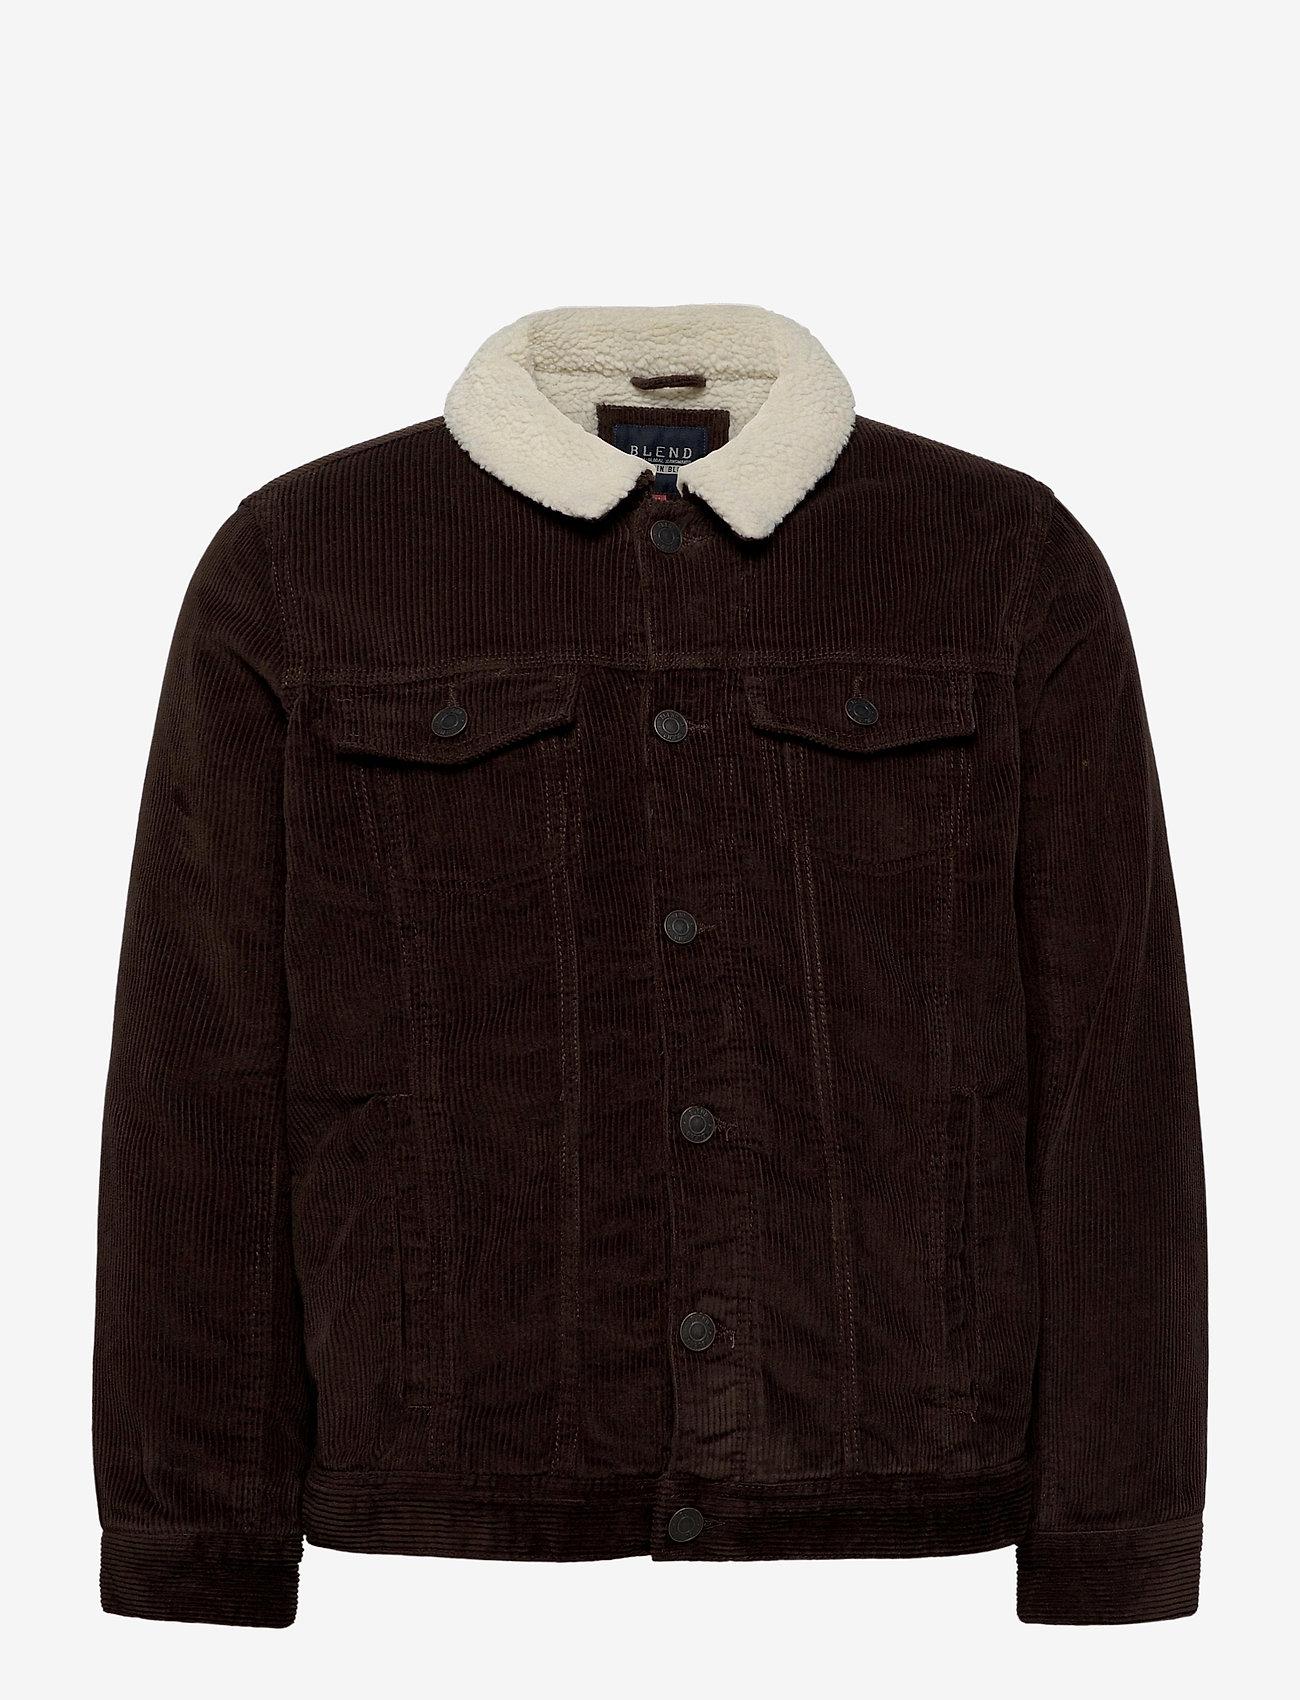 Blend - Outerwear - denim jackets - dark earth brown - 0